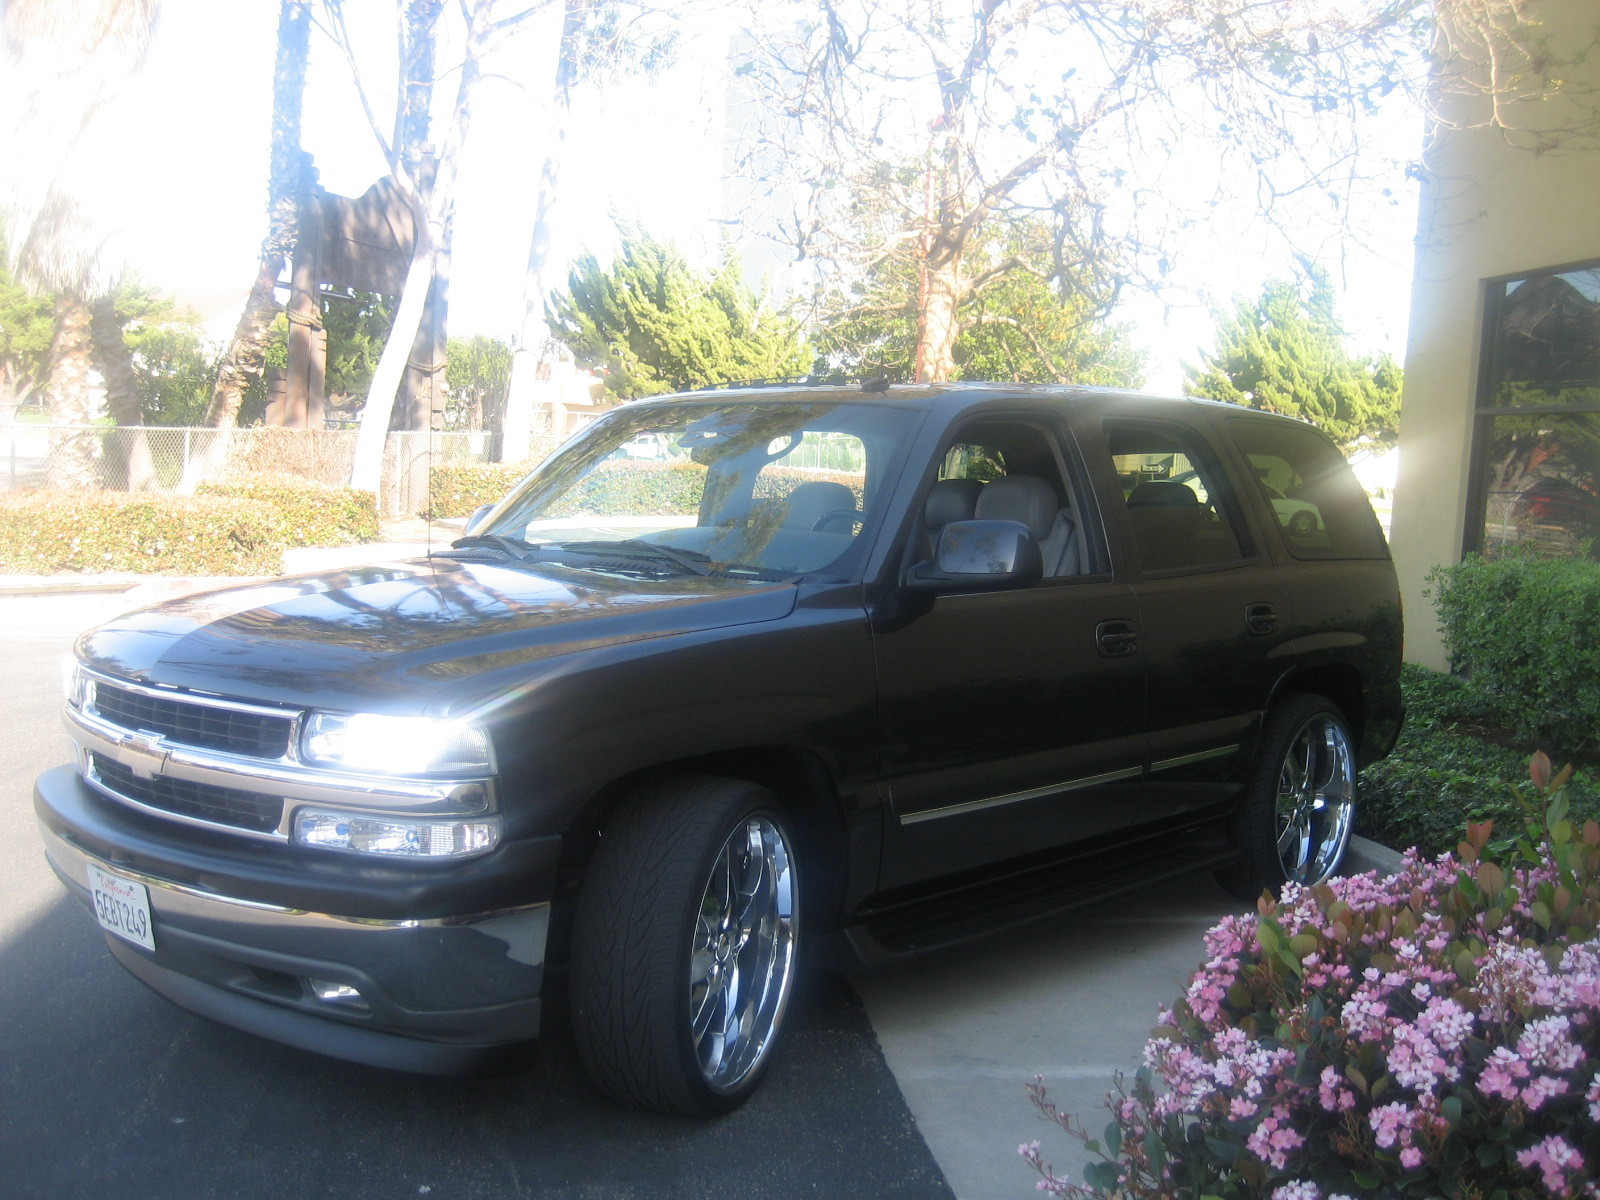 brianna2006 39 s 2003 chevrolet tahoe in oxnard ca. Black Bedroom Furniture Sets. Home Design Ideas